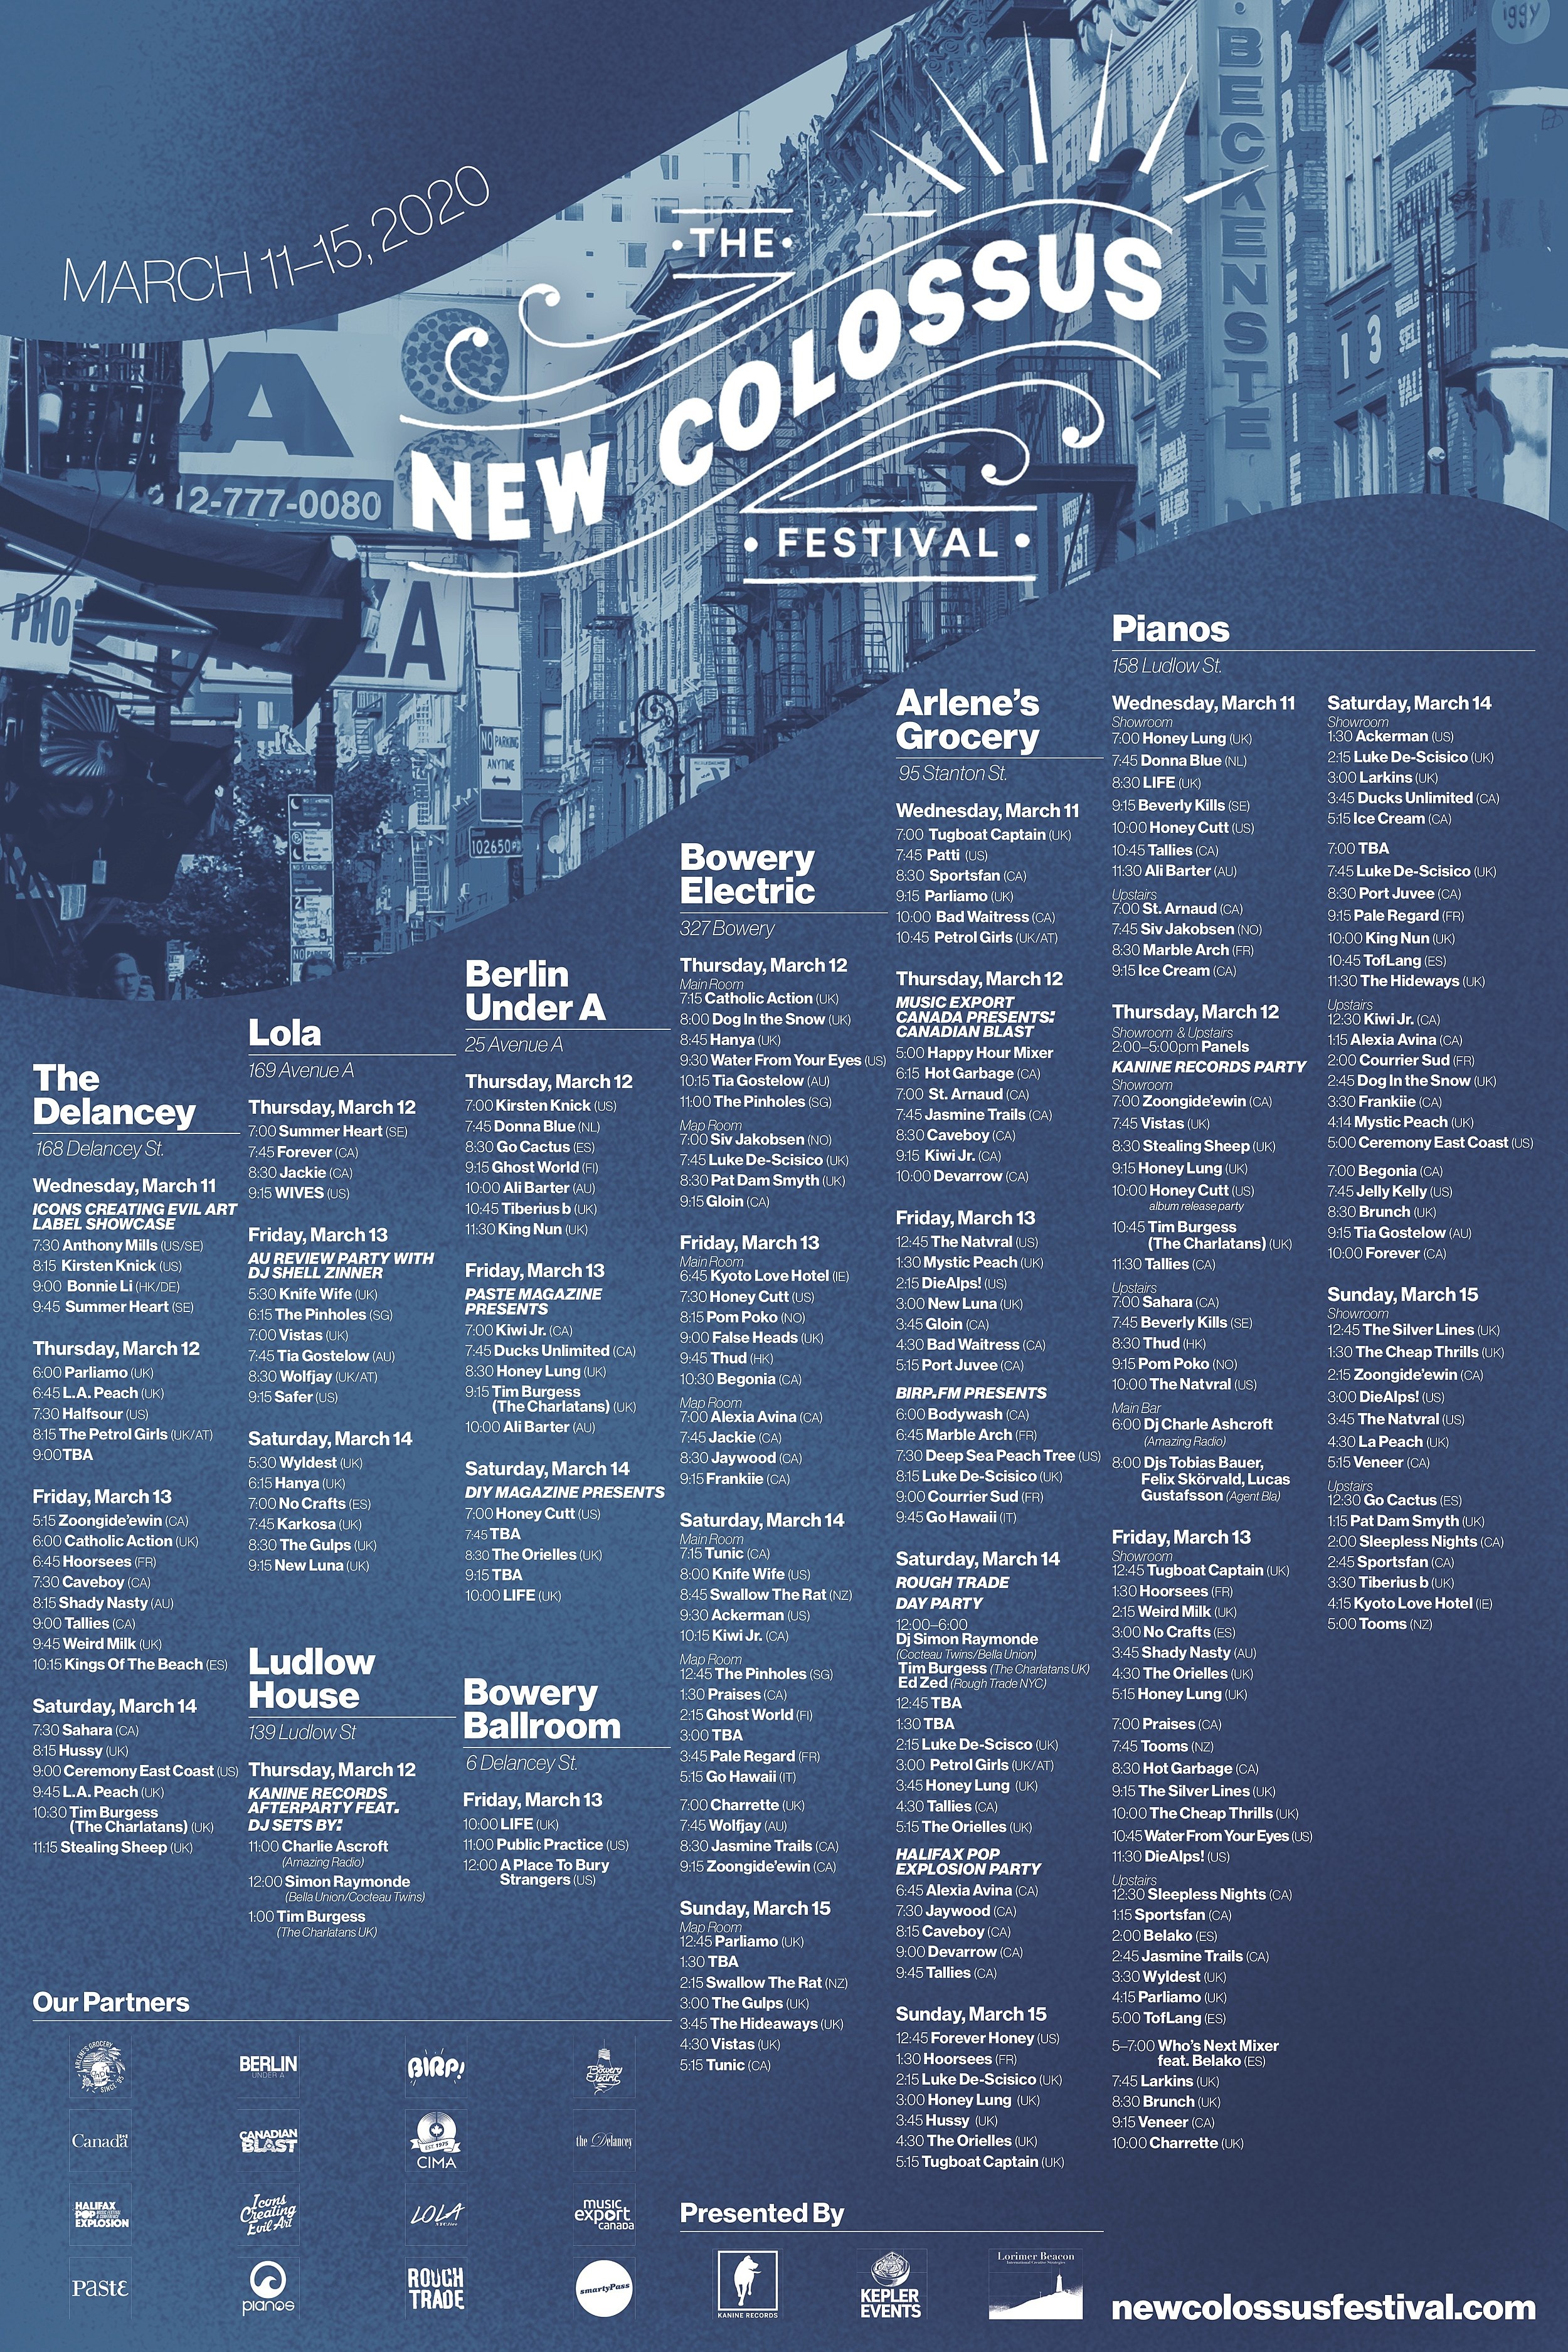 new-colossus-festival-2020-poster